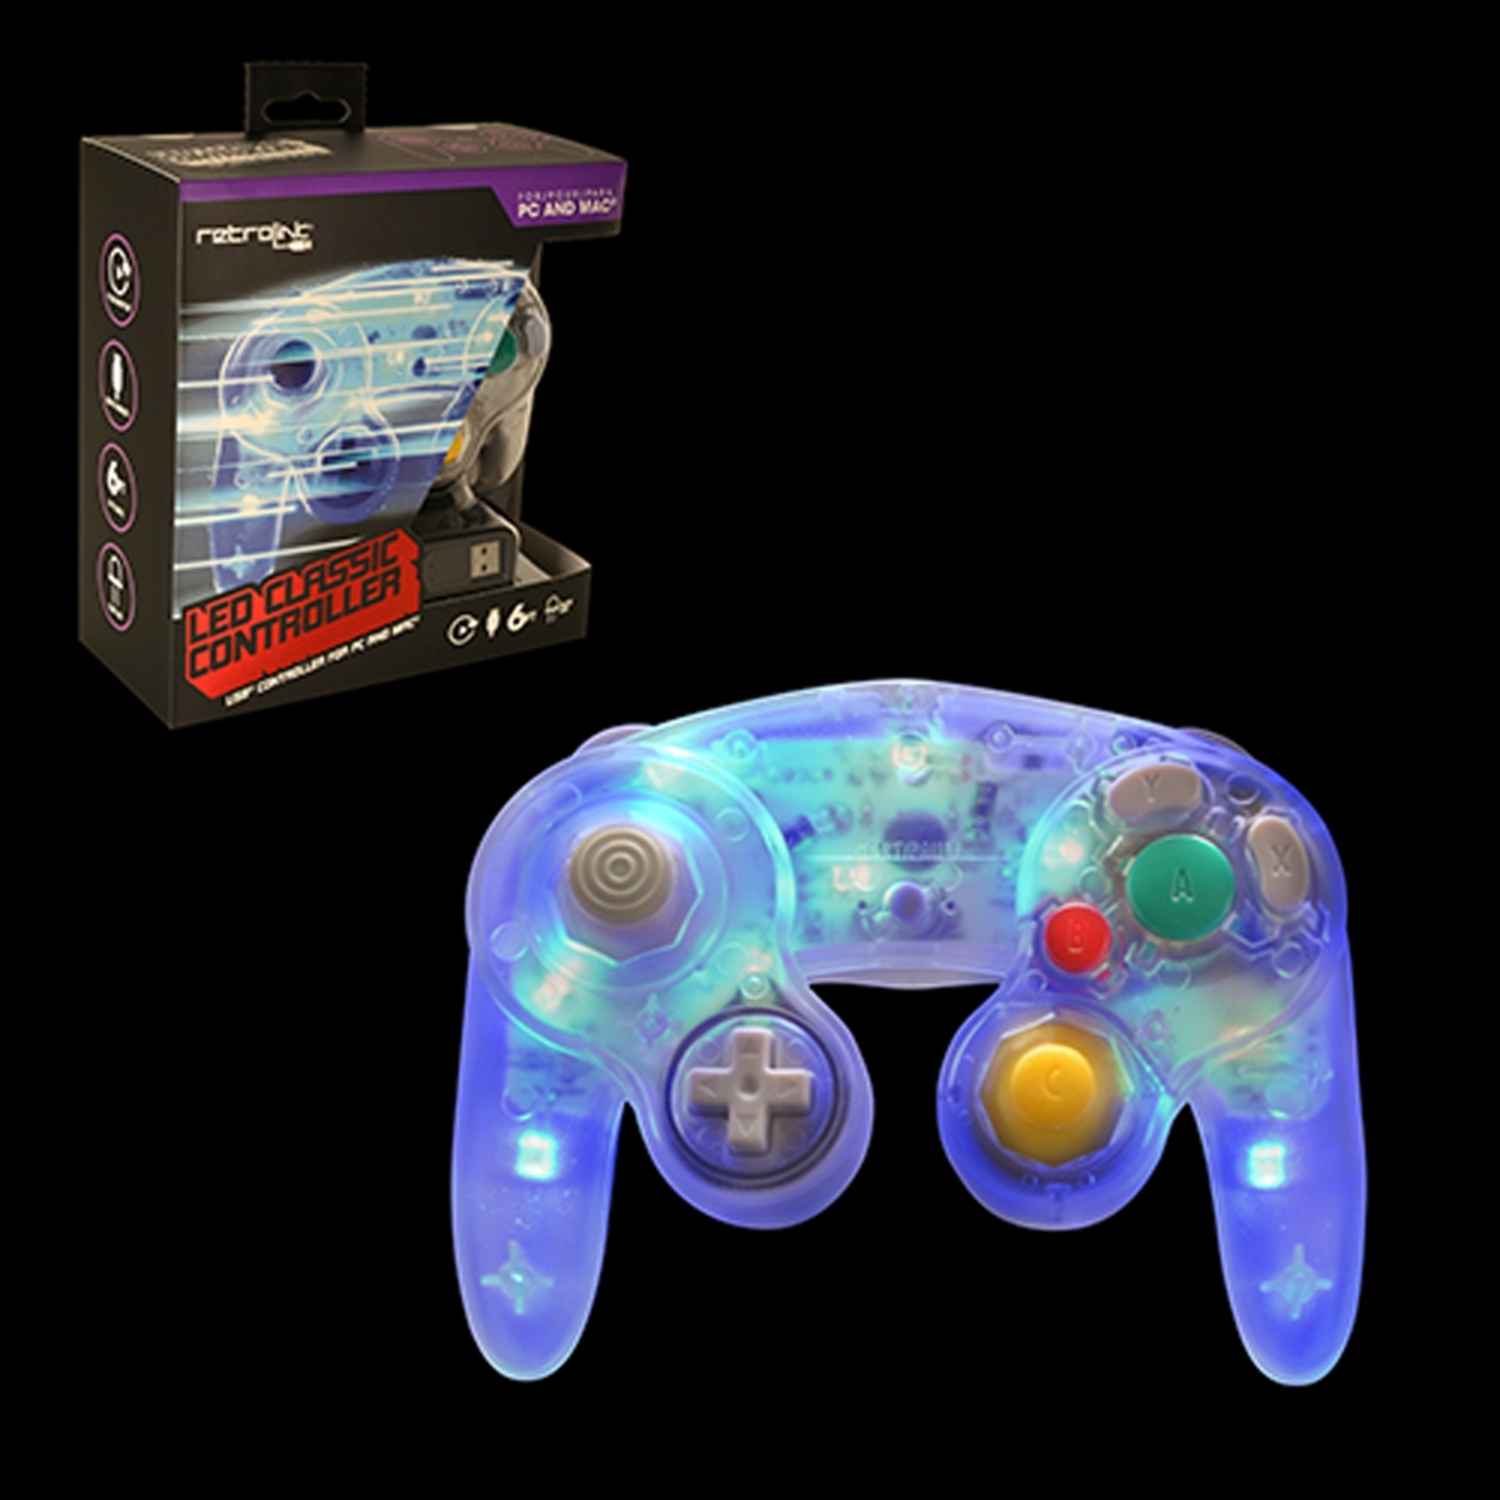 PC - Controller - Wired - Gamecube Style - USB Controller for PC & MAC - Blue LED (Retrolink)